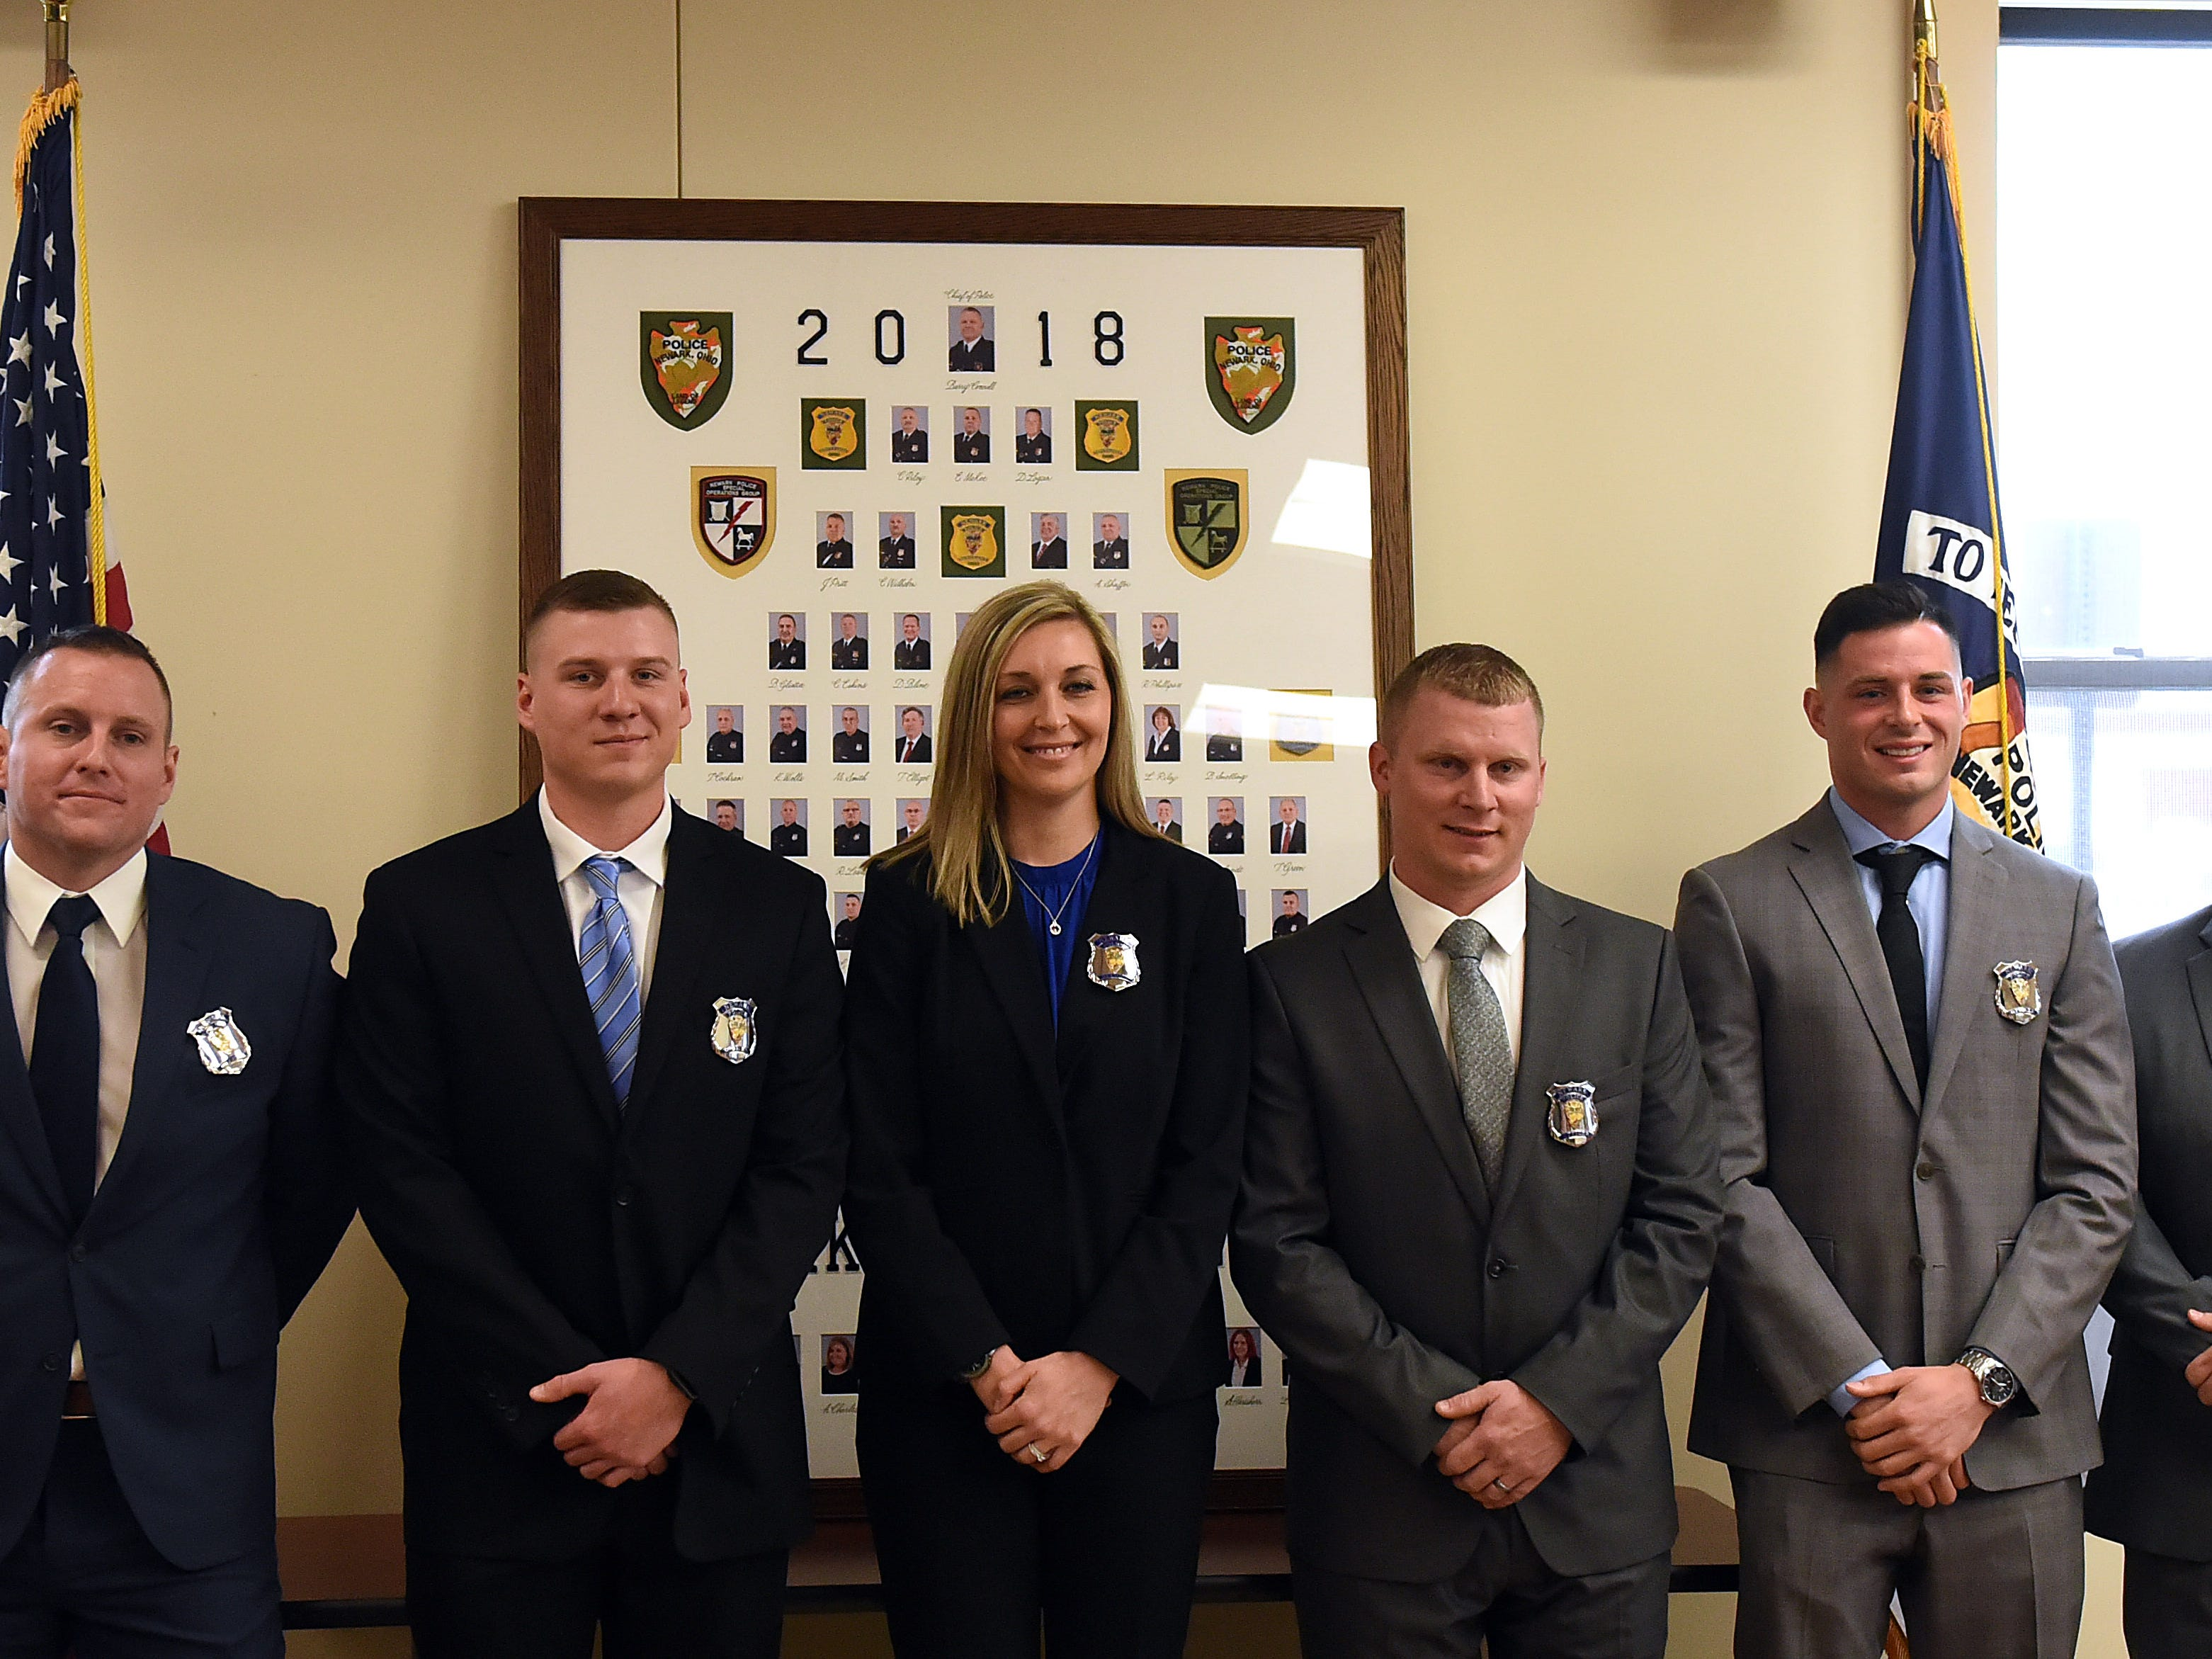 The Newark Police Department swore in seven new officers on Monday, April 29, 2019.